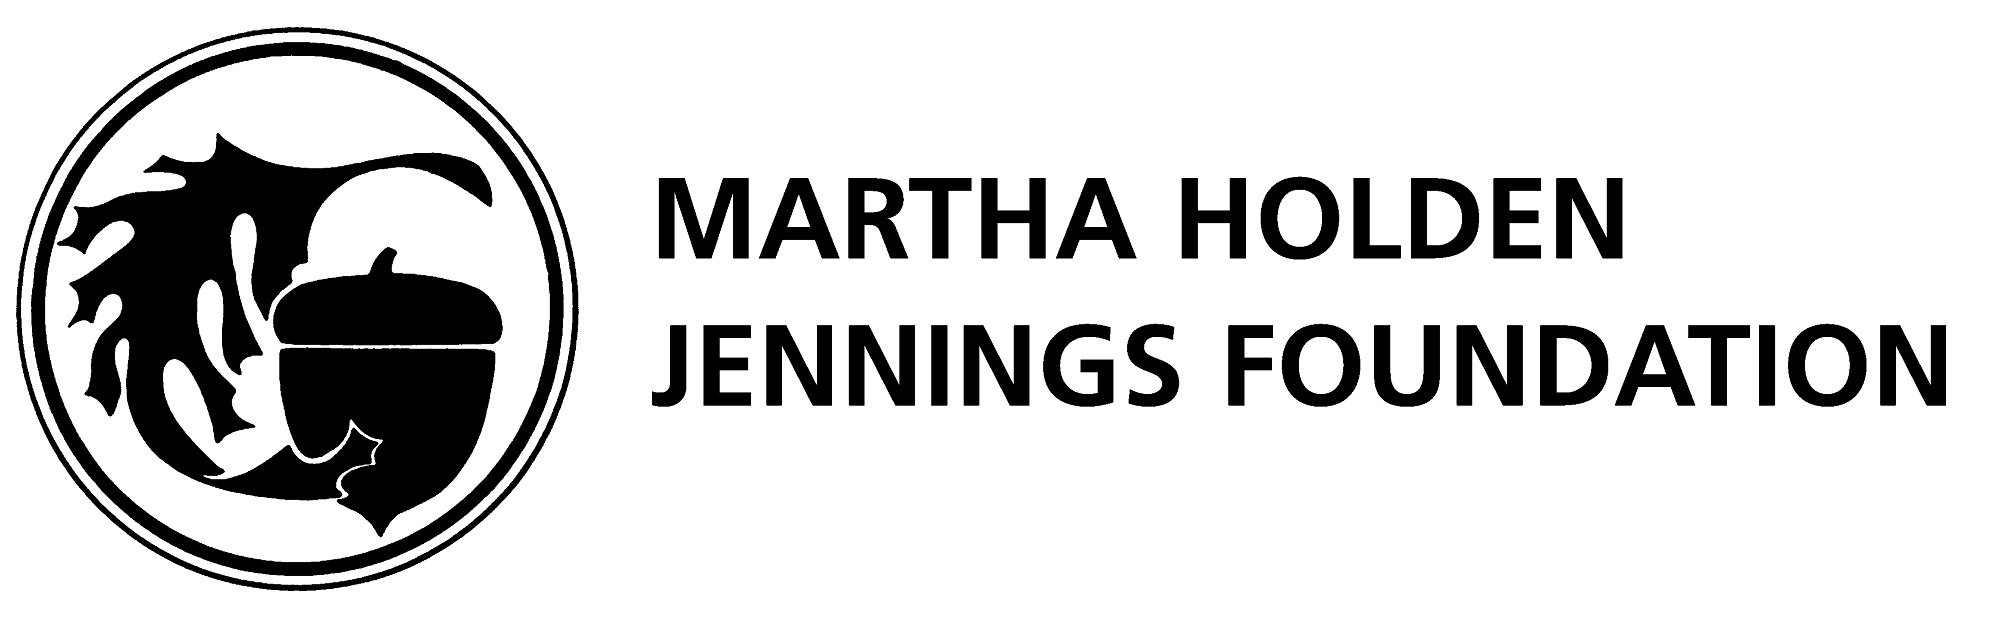 Martha Holding Jennings Foundation